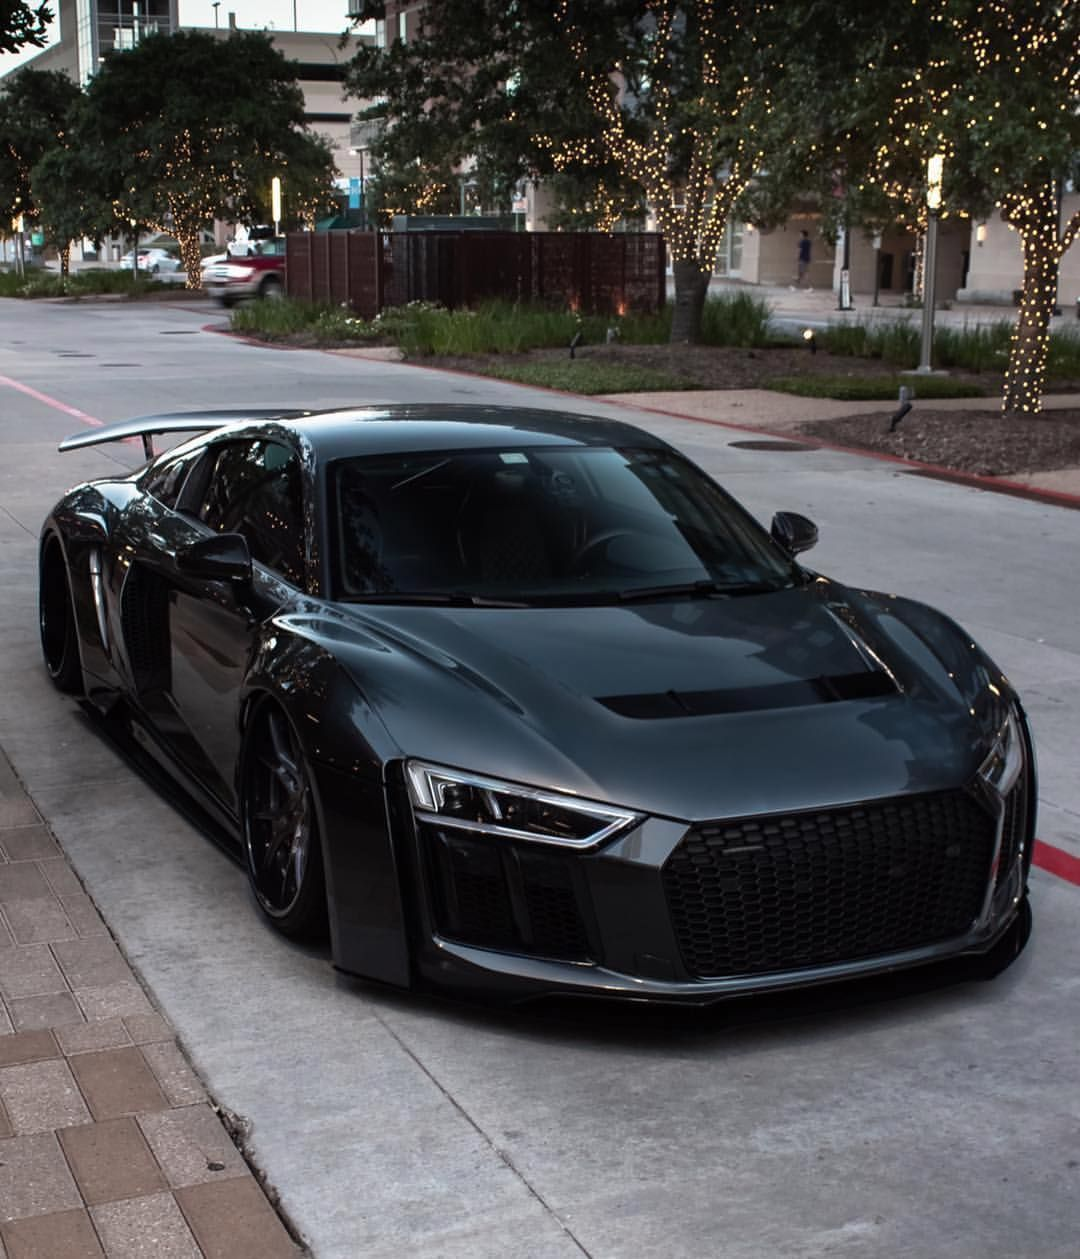 Look At These Sports Cars Classy And Luxurious Car There Are Lamborghini Ferrari Bmw Audi Bugati Etc Coolca Sports Cars Luxury Super Cars Sports Cars